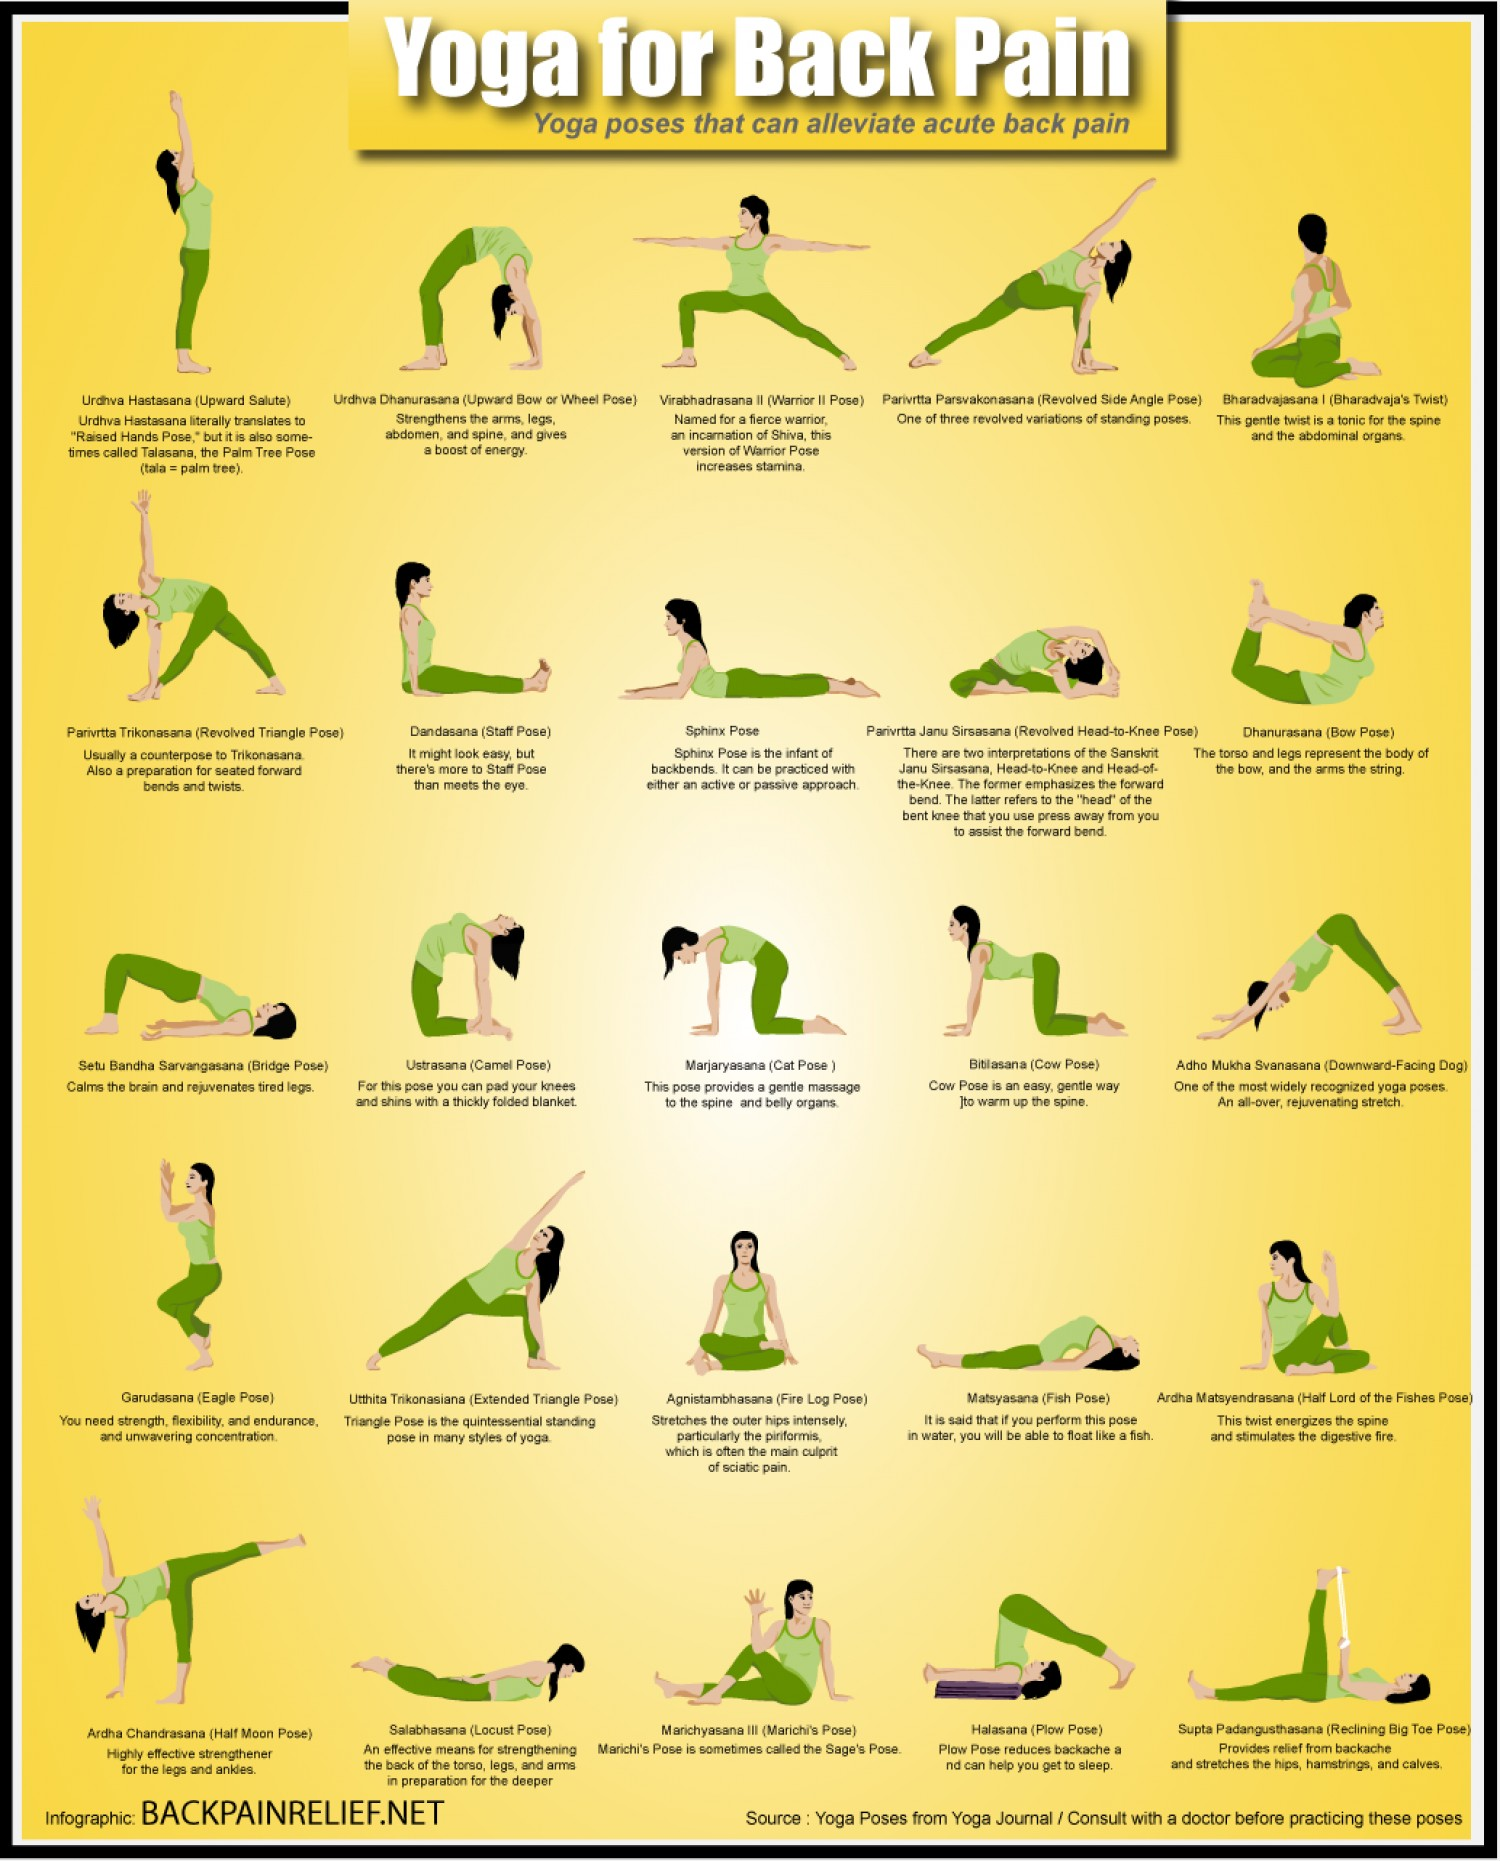 15. Yoga for back pain